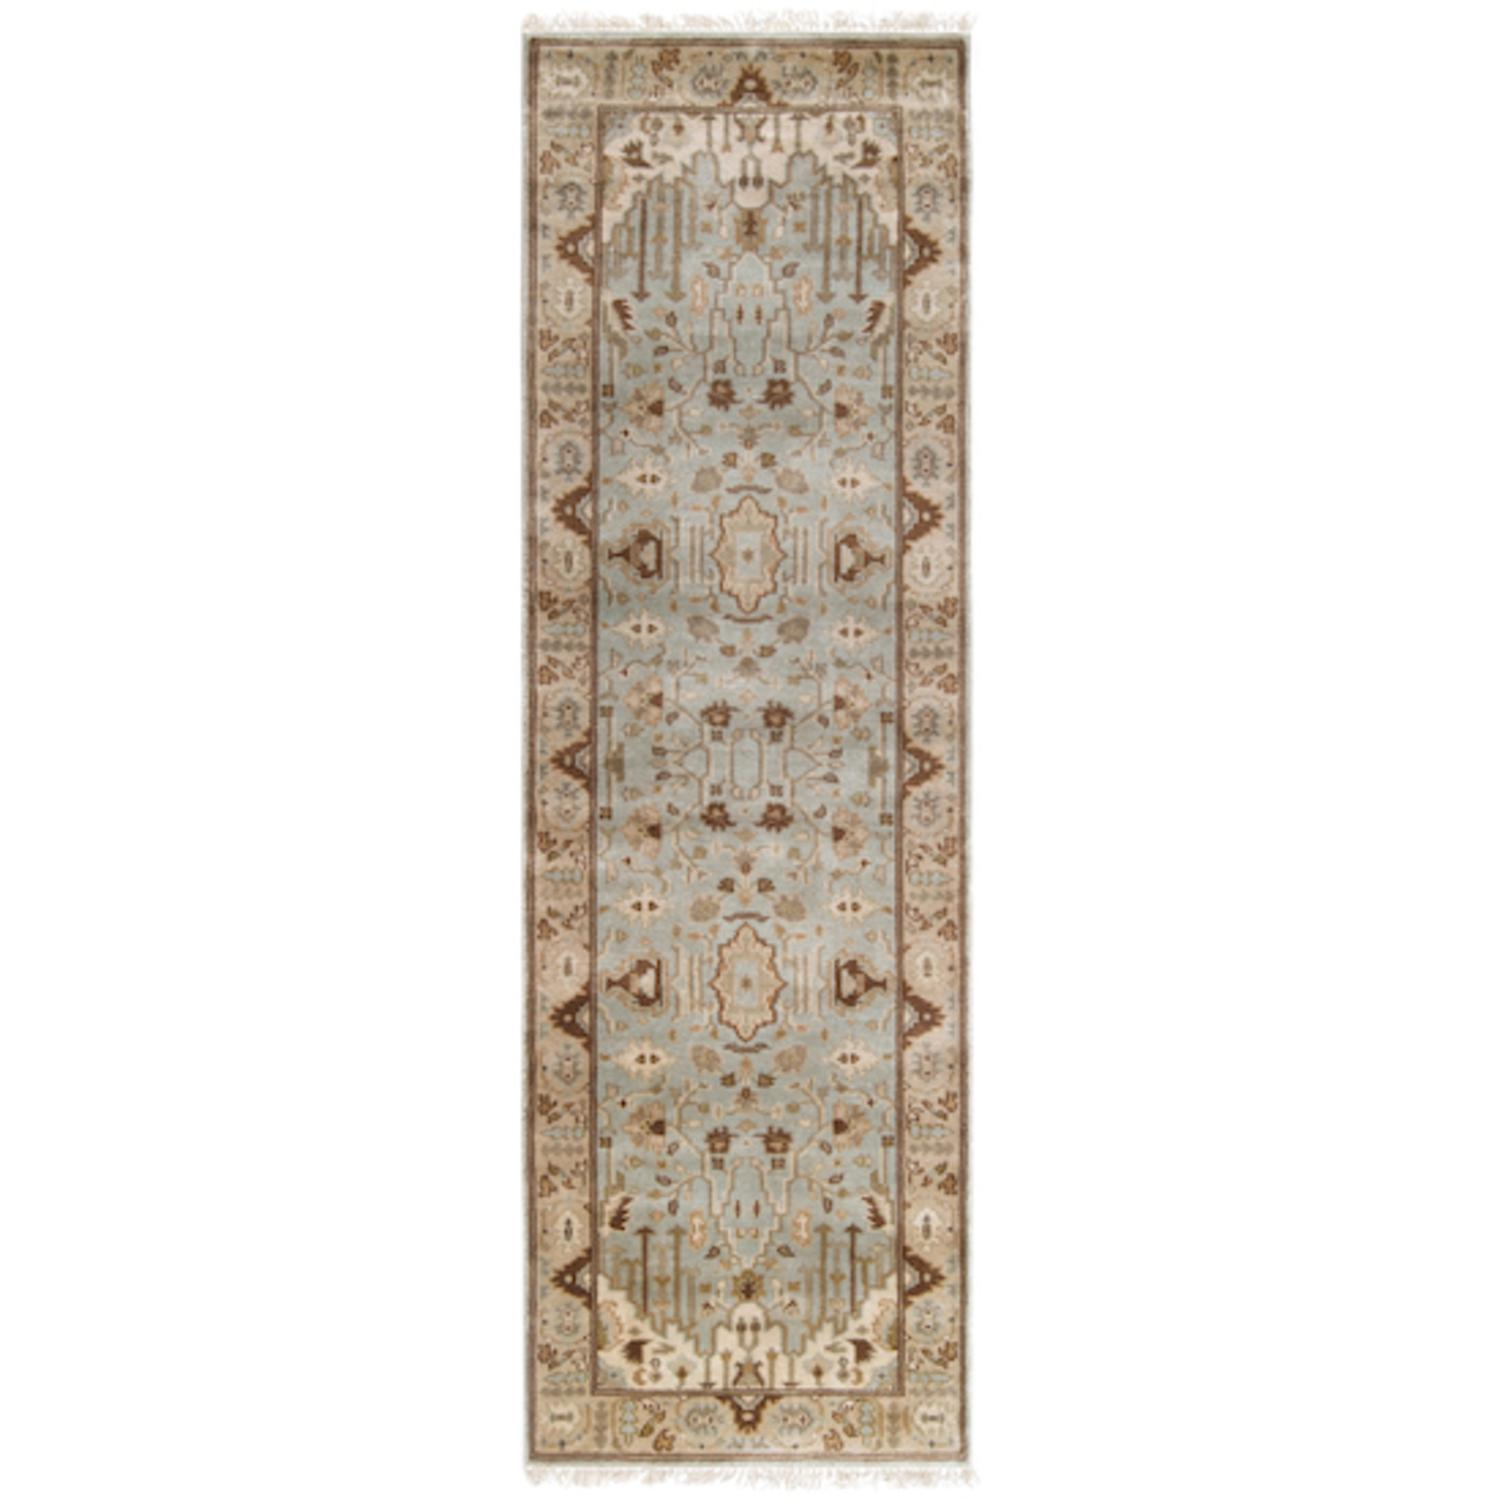 2.5' x 8' Beraber Taupe Beige, Fawn and Ecru Wool Area Runner Throw Rug